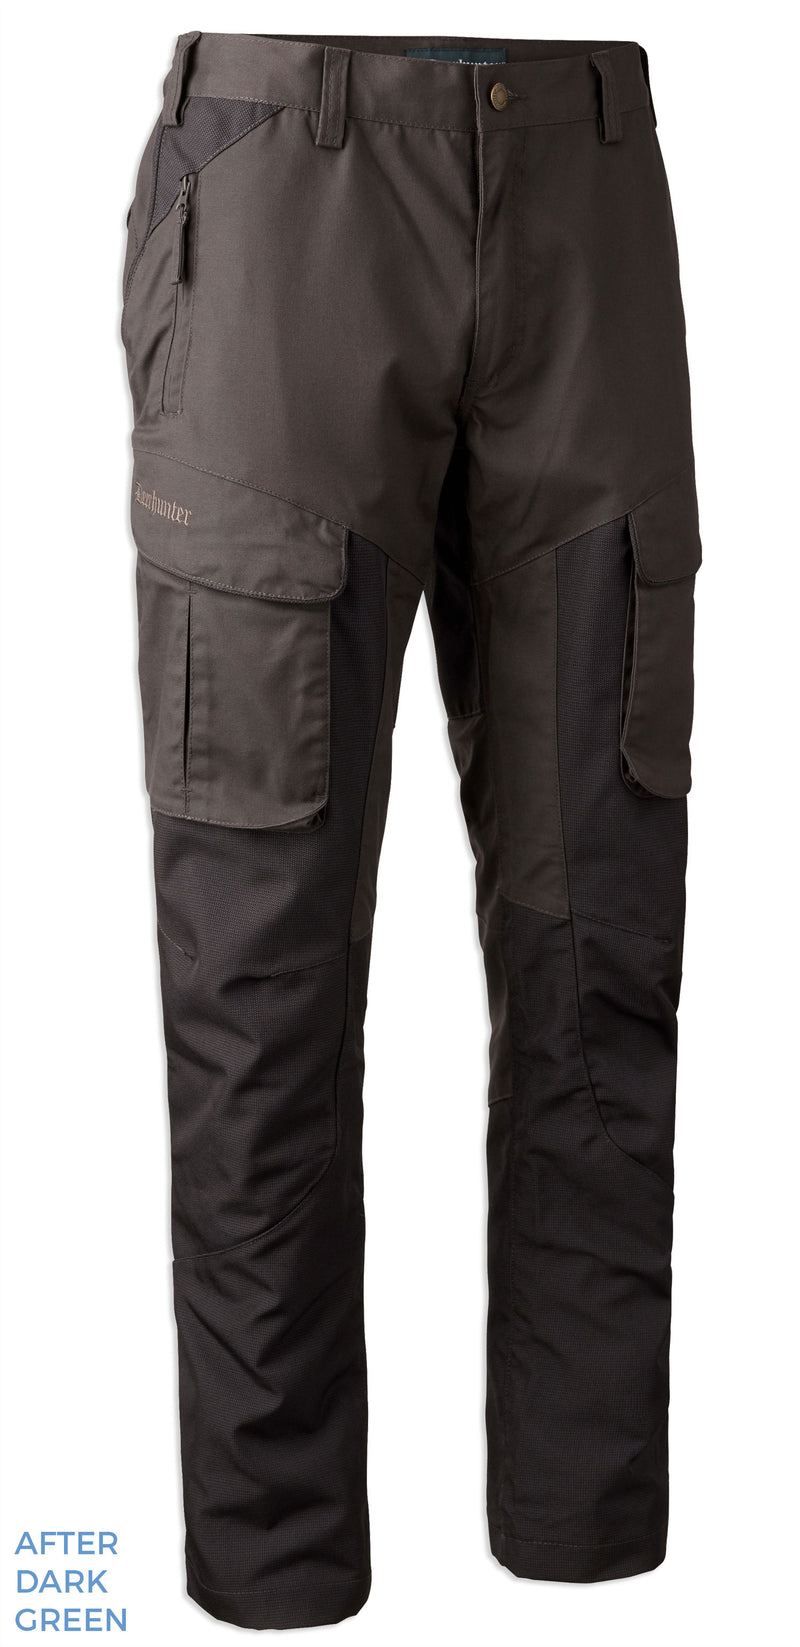 Dark Green Deerhunter Reims Trousers with Reinforcement